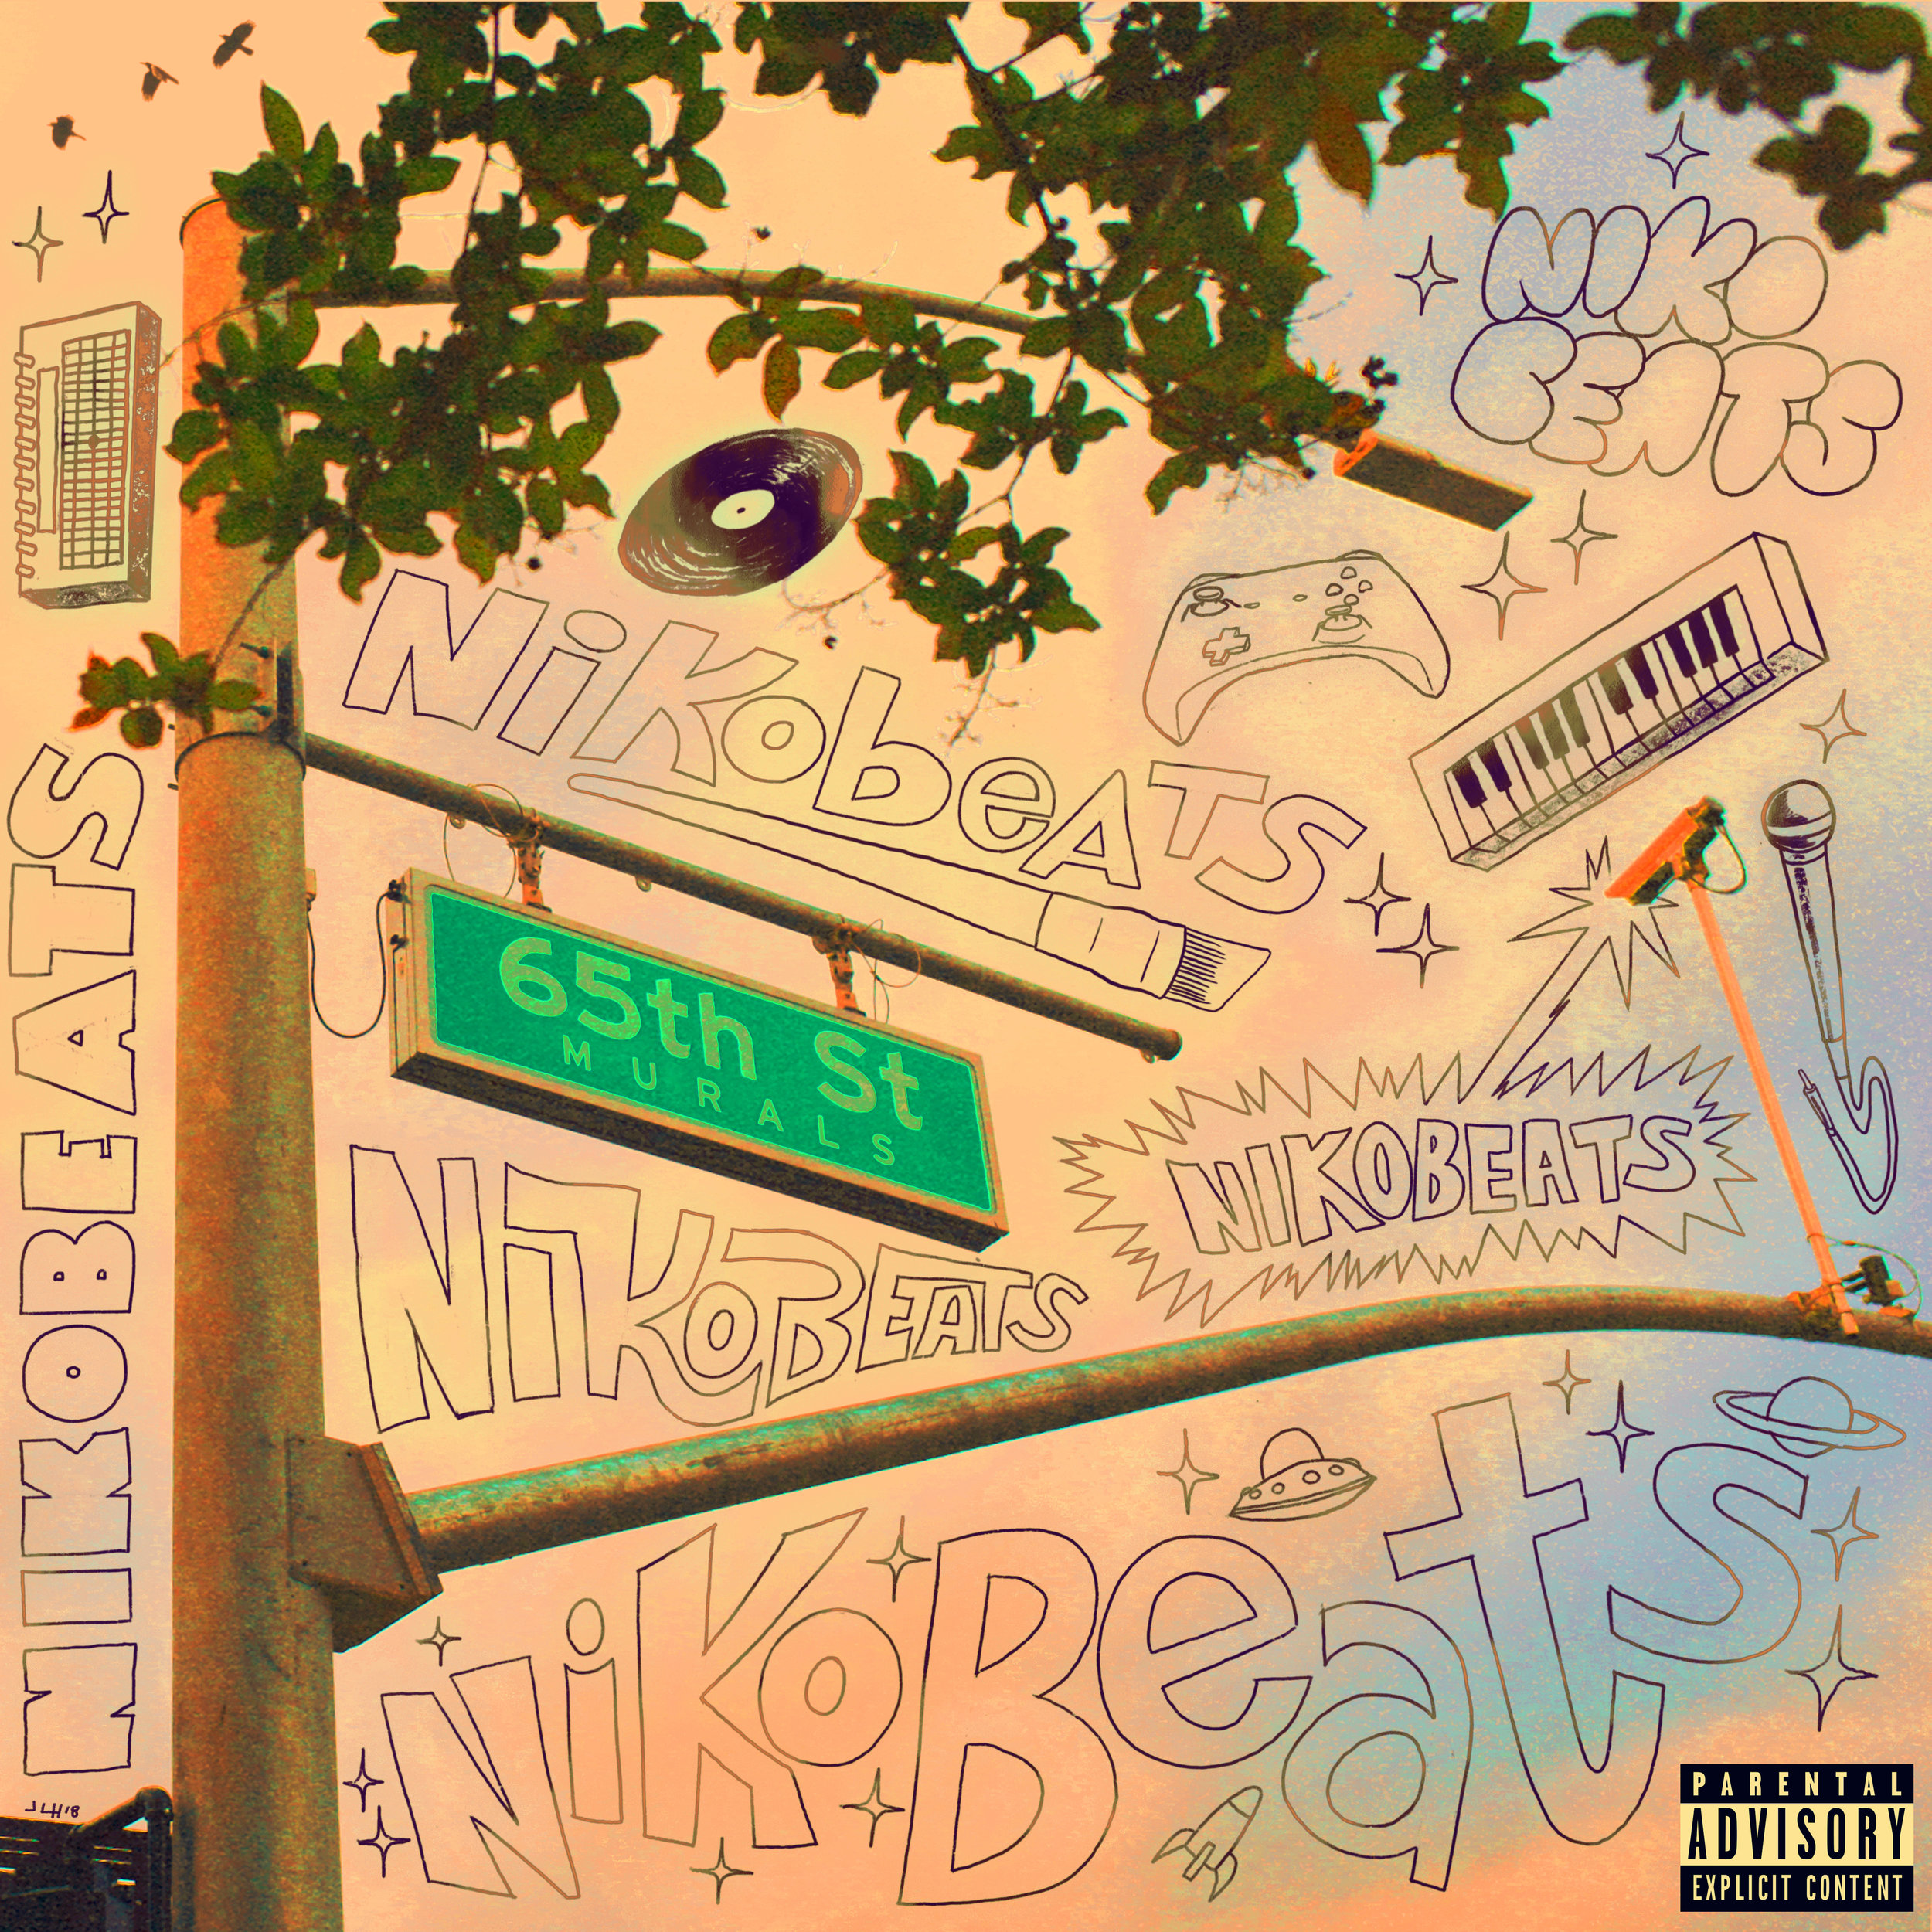 Nikobeats - 65th St Murals (2018) - Written, Produced, Performed, and Co-Mixed by NIkobeats